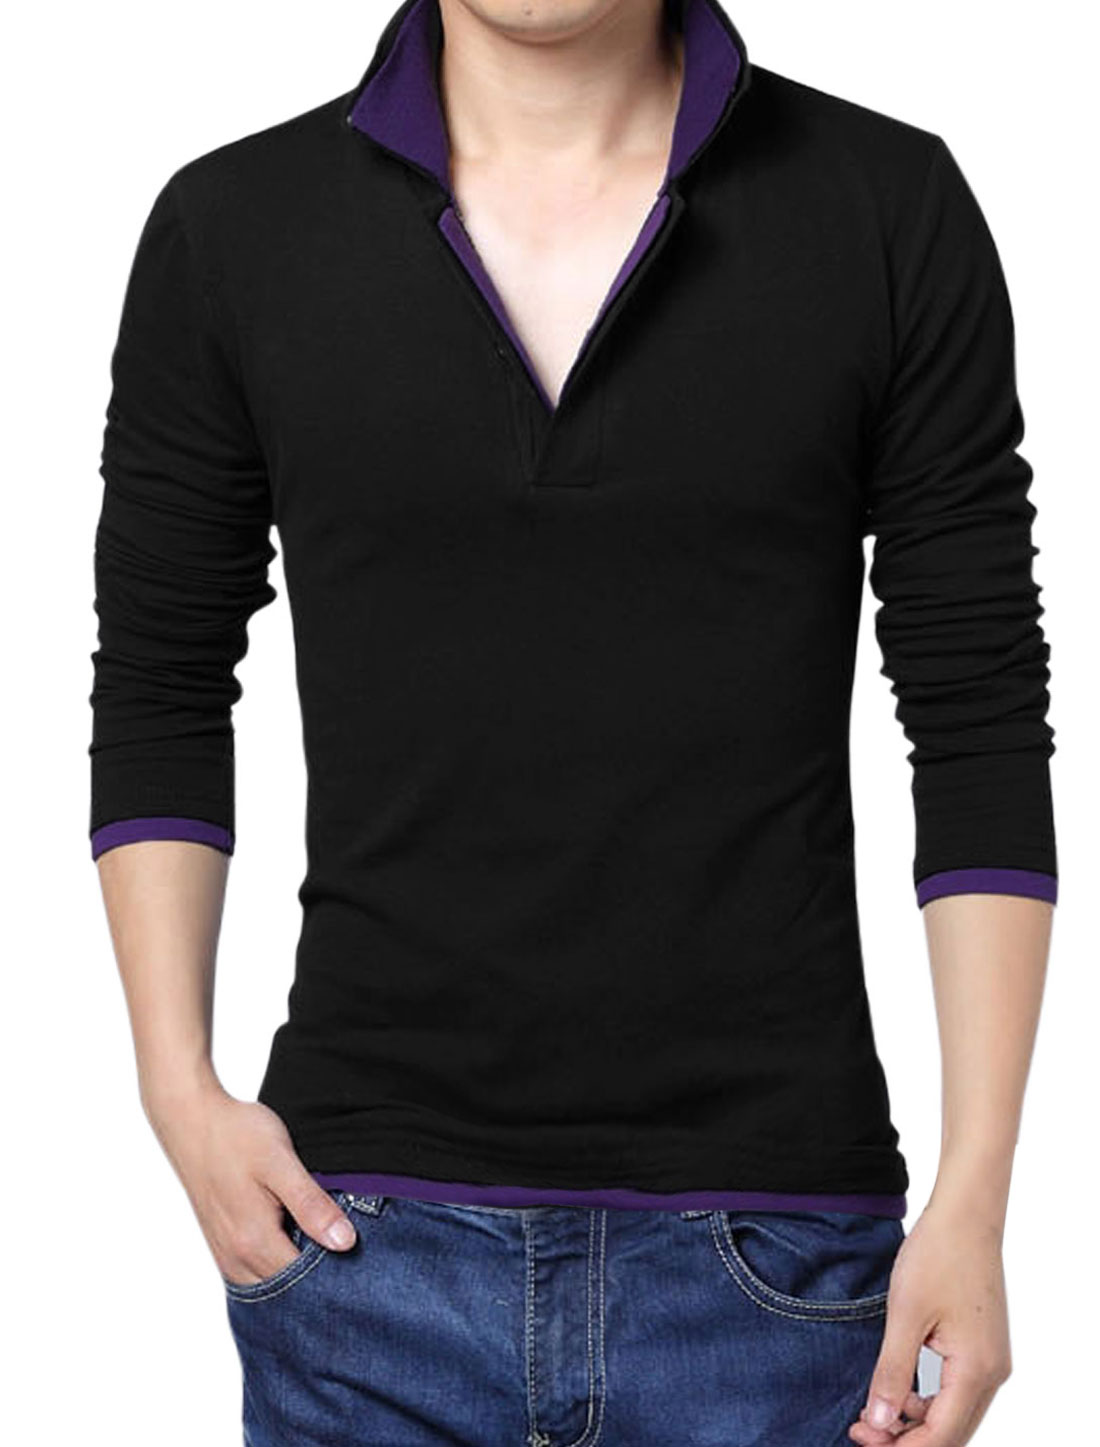 Men Layered Point Collar Long Sleeve Stylish Polo Shirt Black Purple M